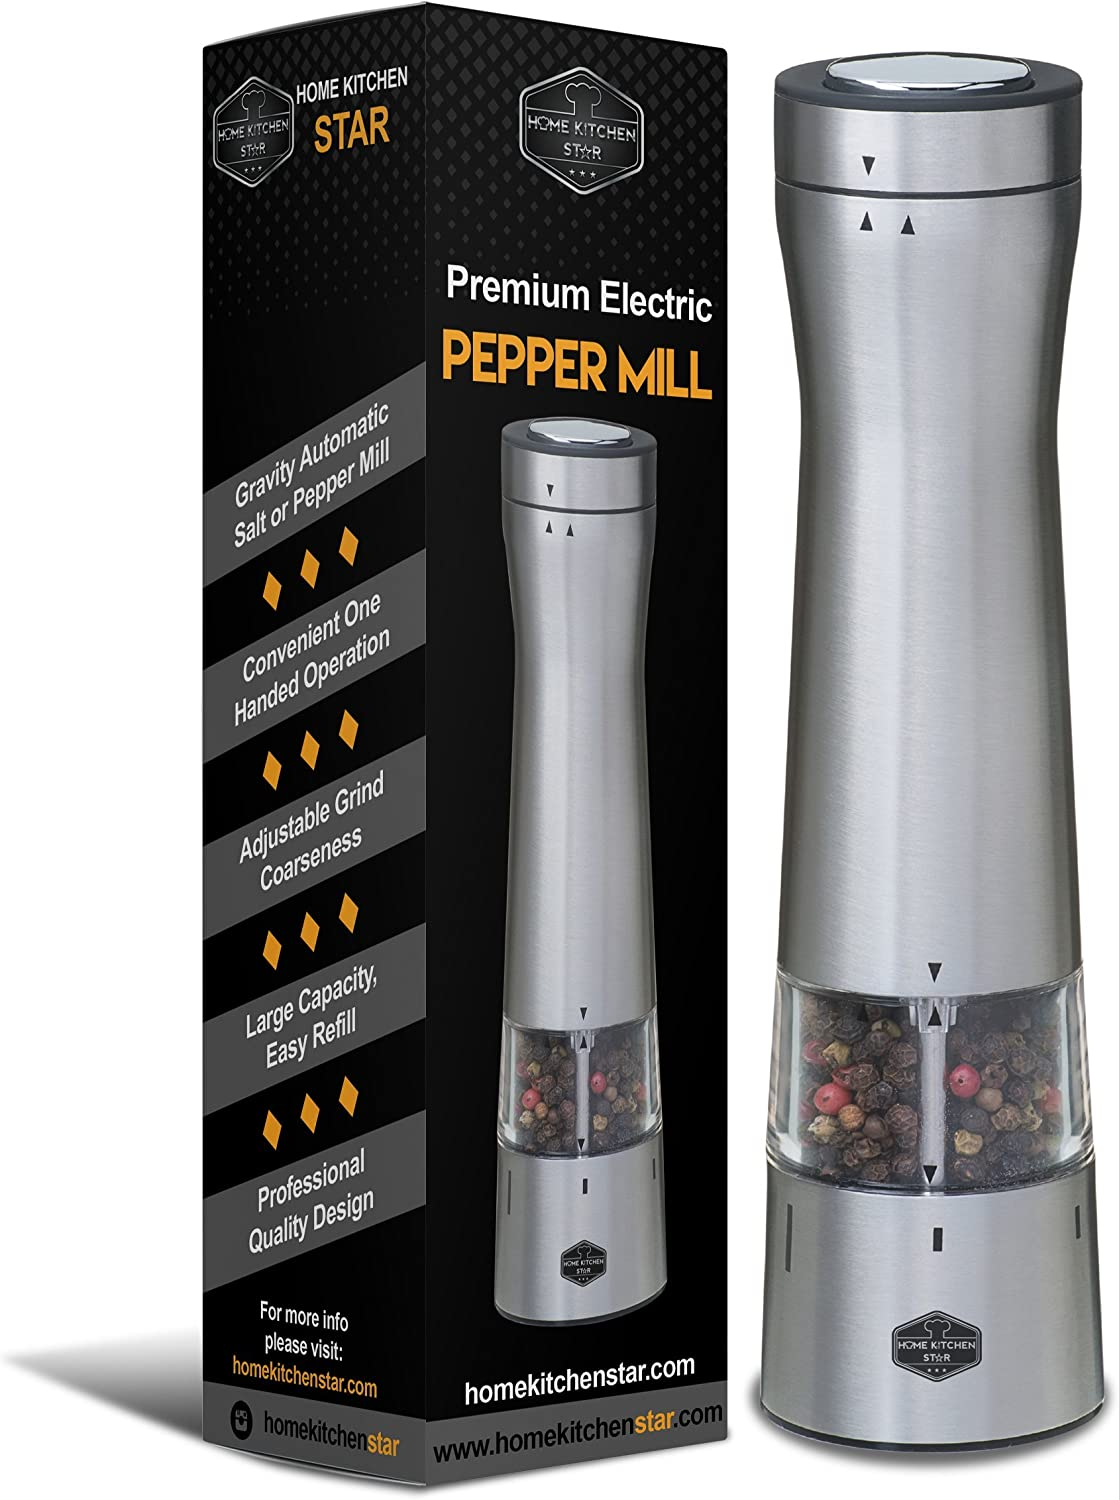 Premium Electric Pepper Grinder or Salt Mill - Bottom LED Light, Adjustable Grind Coarseness, Automatic Battery Operated, One Handed Electronic, Black PepperMill, New Modern Design (Stainless Steel)